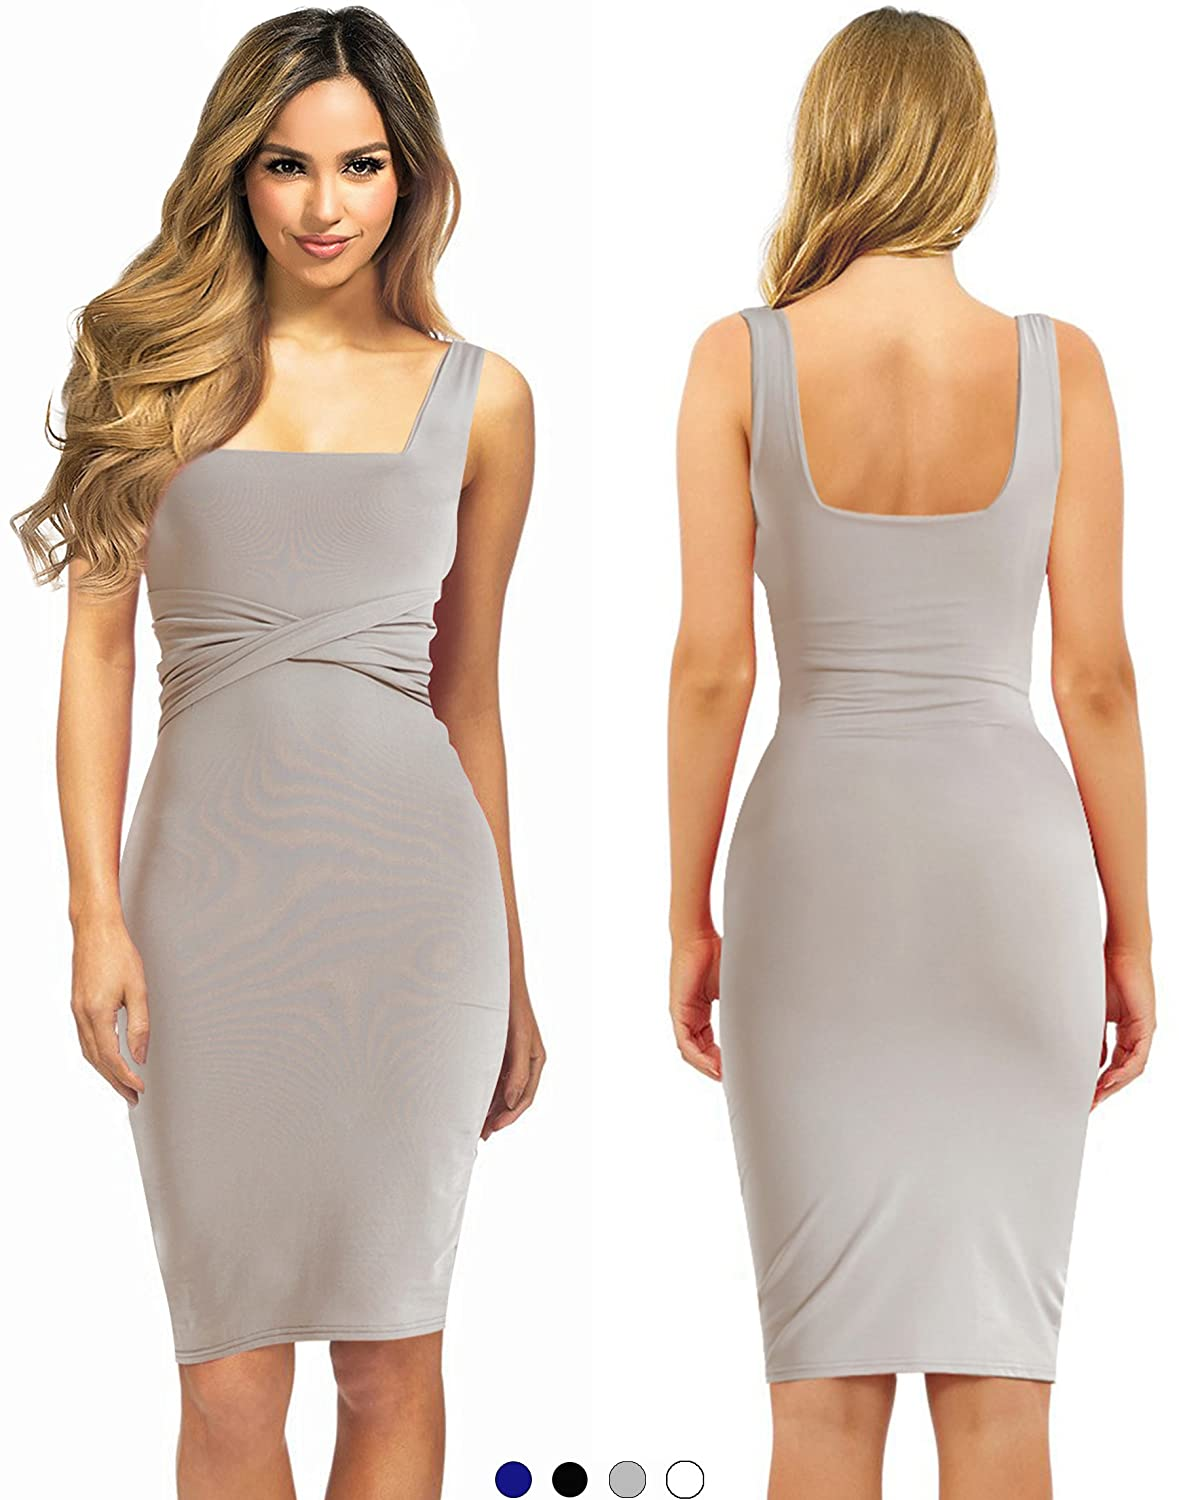 8e46e4cfa •ELEGANT DINNER DRESS FOR THE FASHIONABLE LADY  Look dashing and  fashionable in this midi length cocktail dress. It has a wide strap